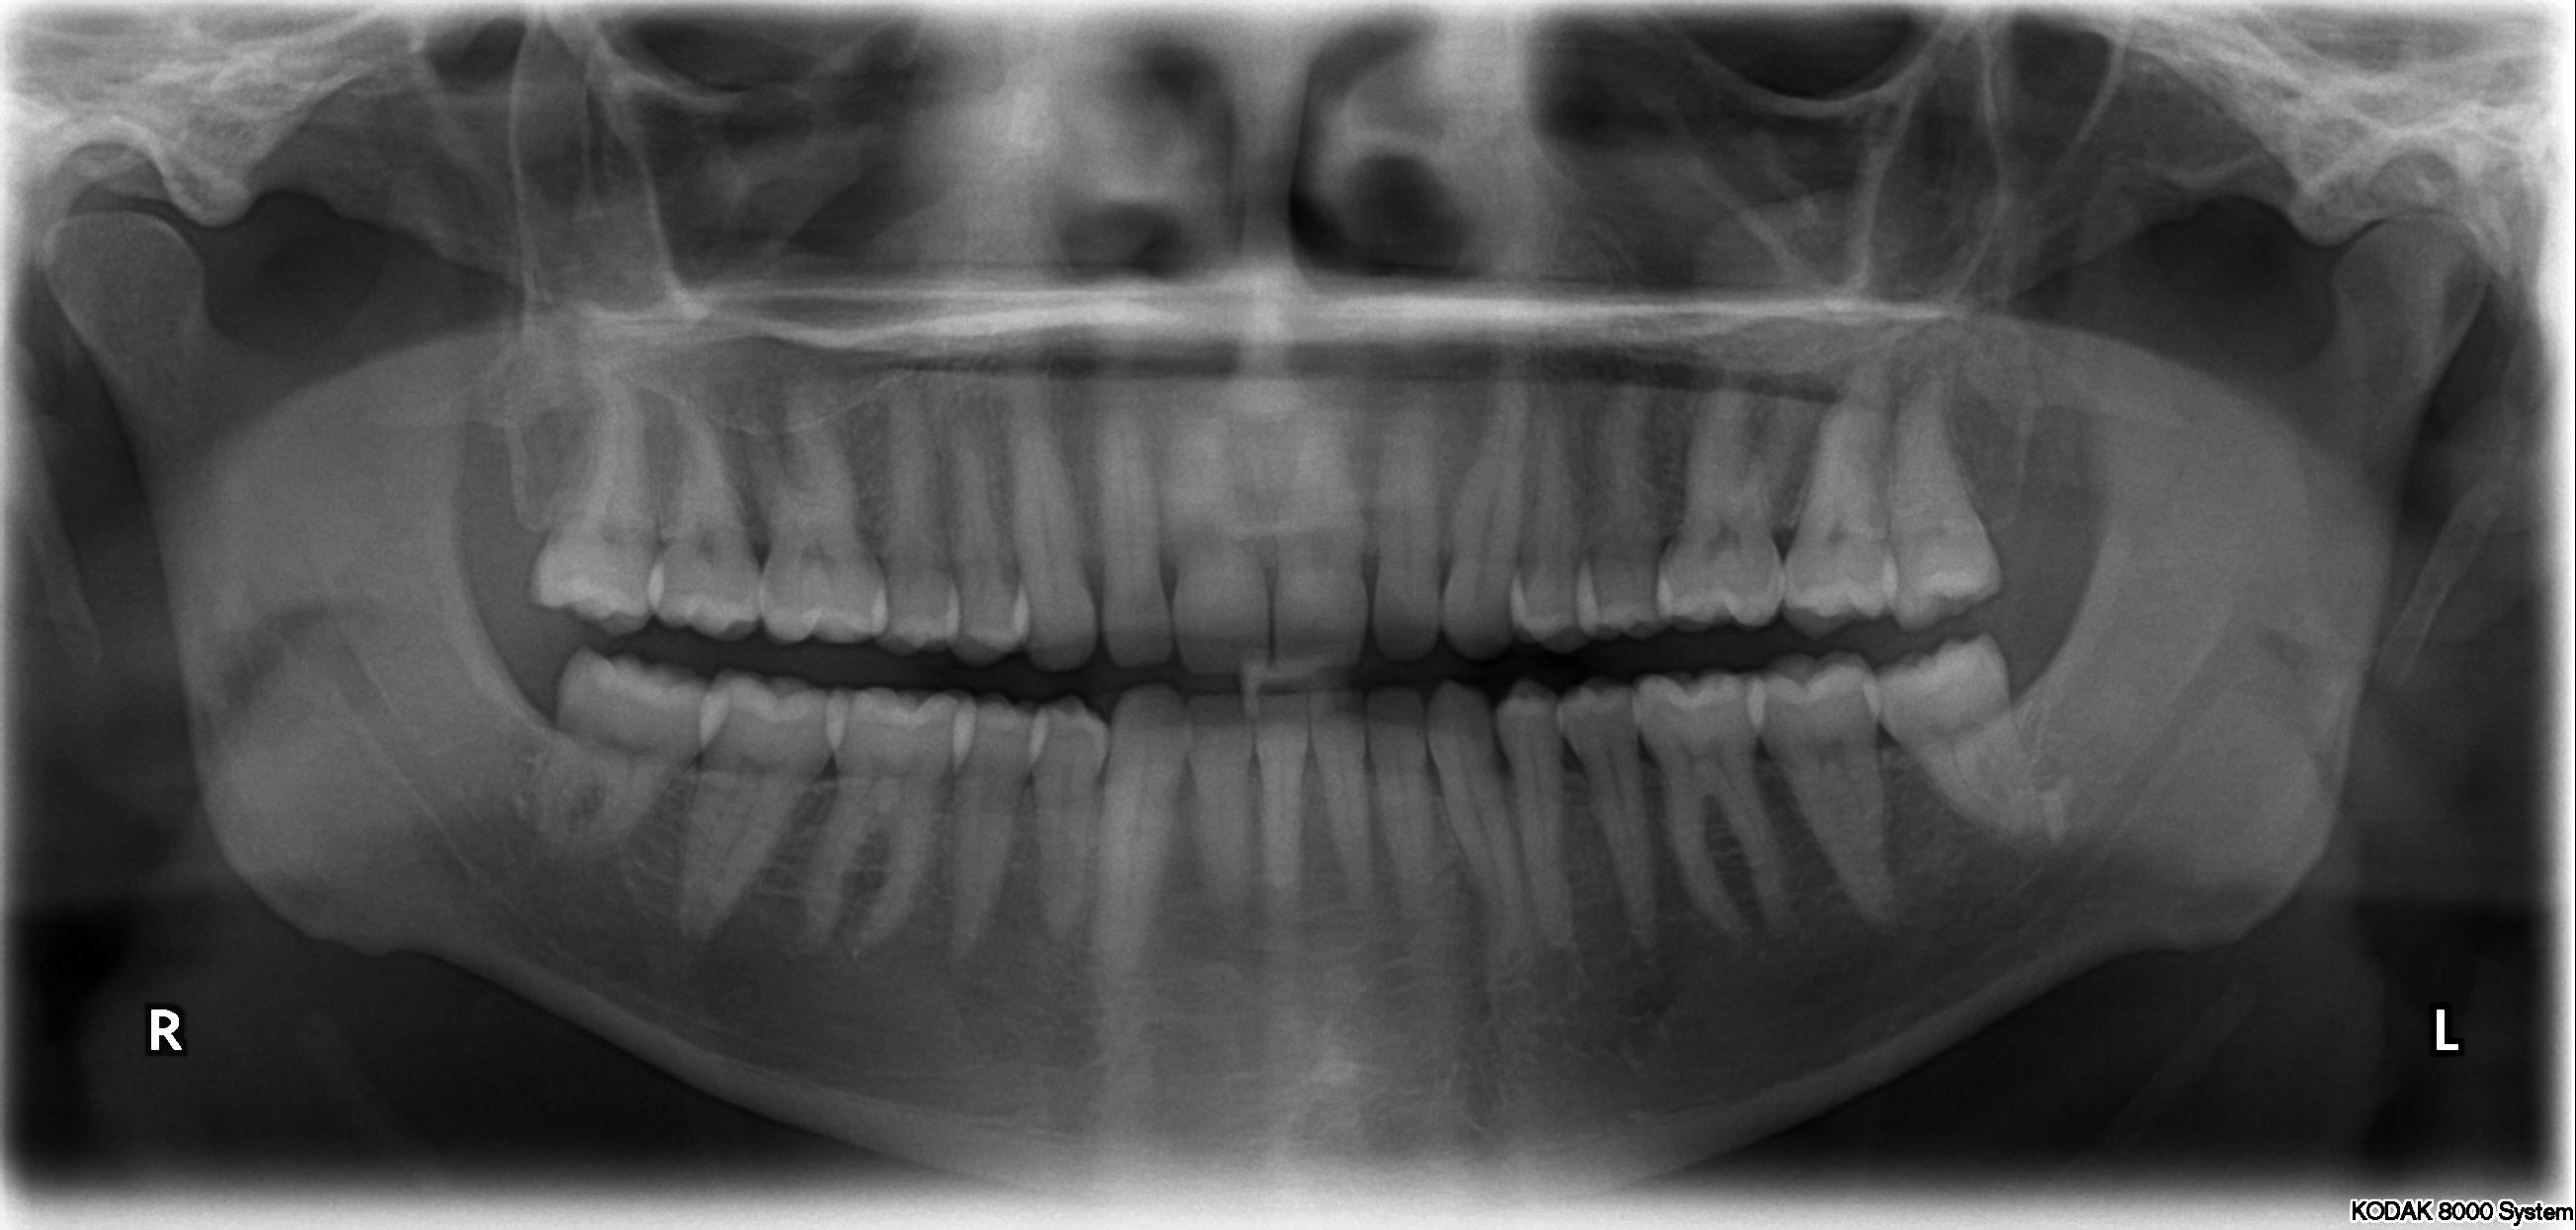 xray of front teeth - photo #2